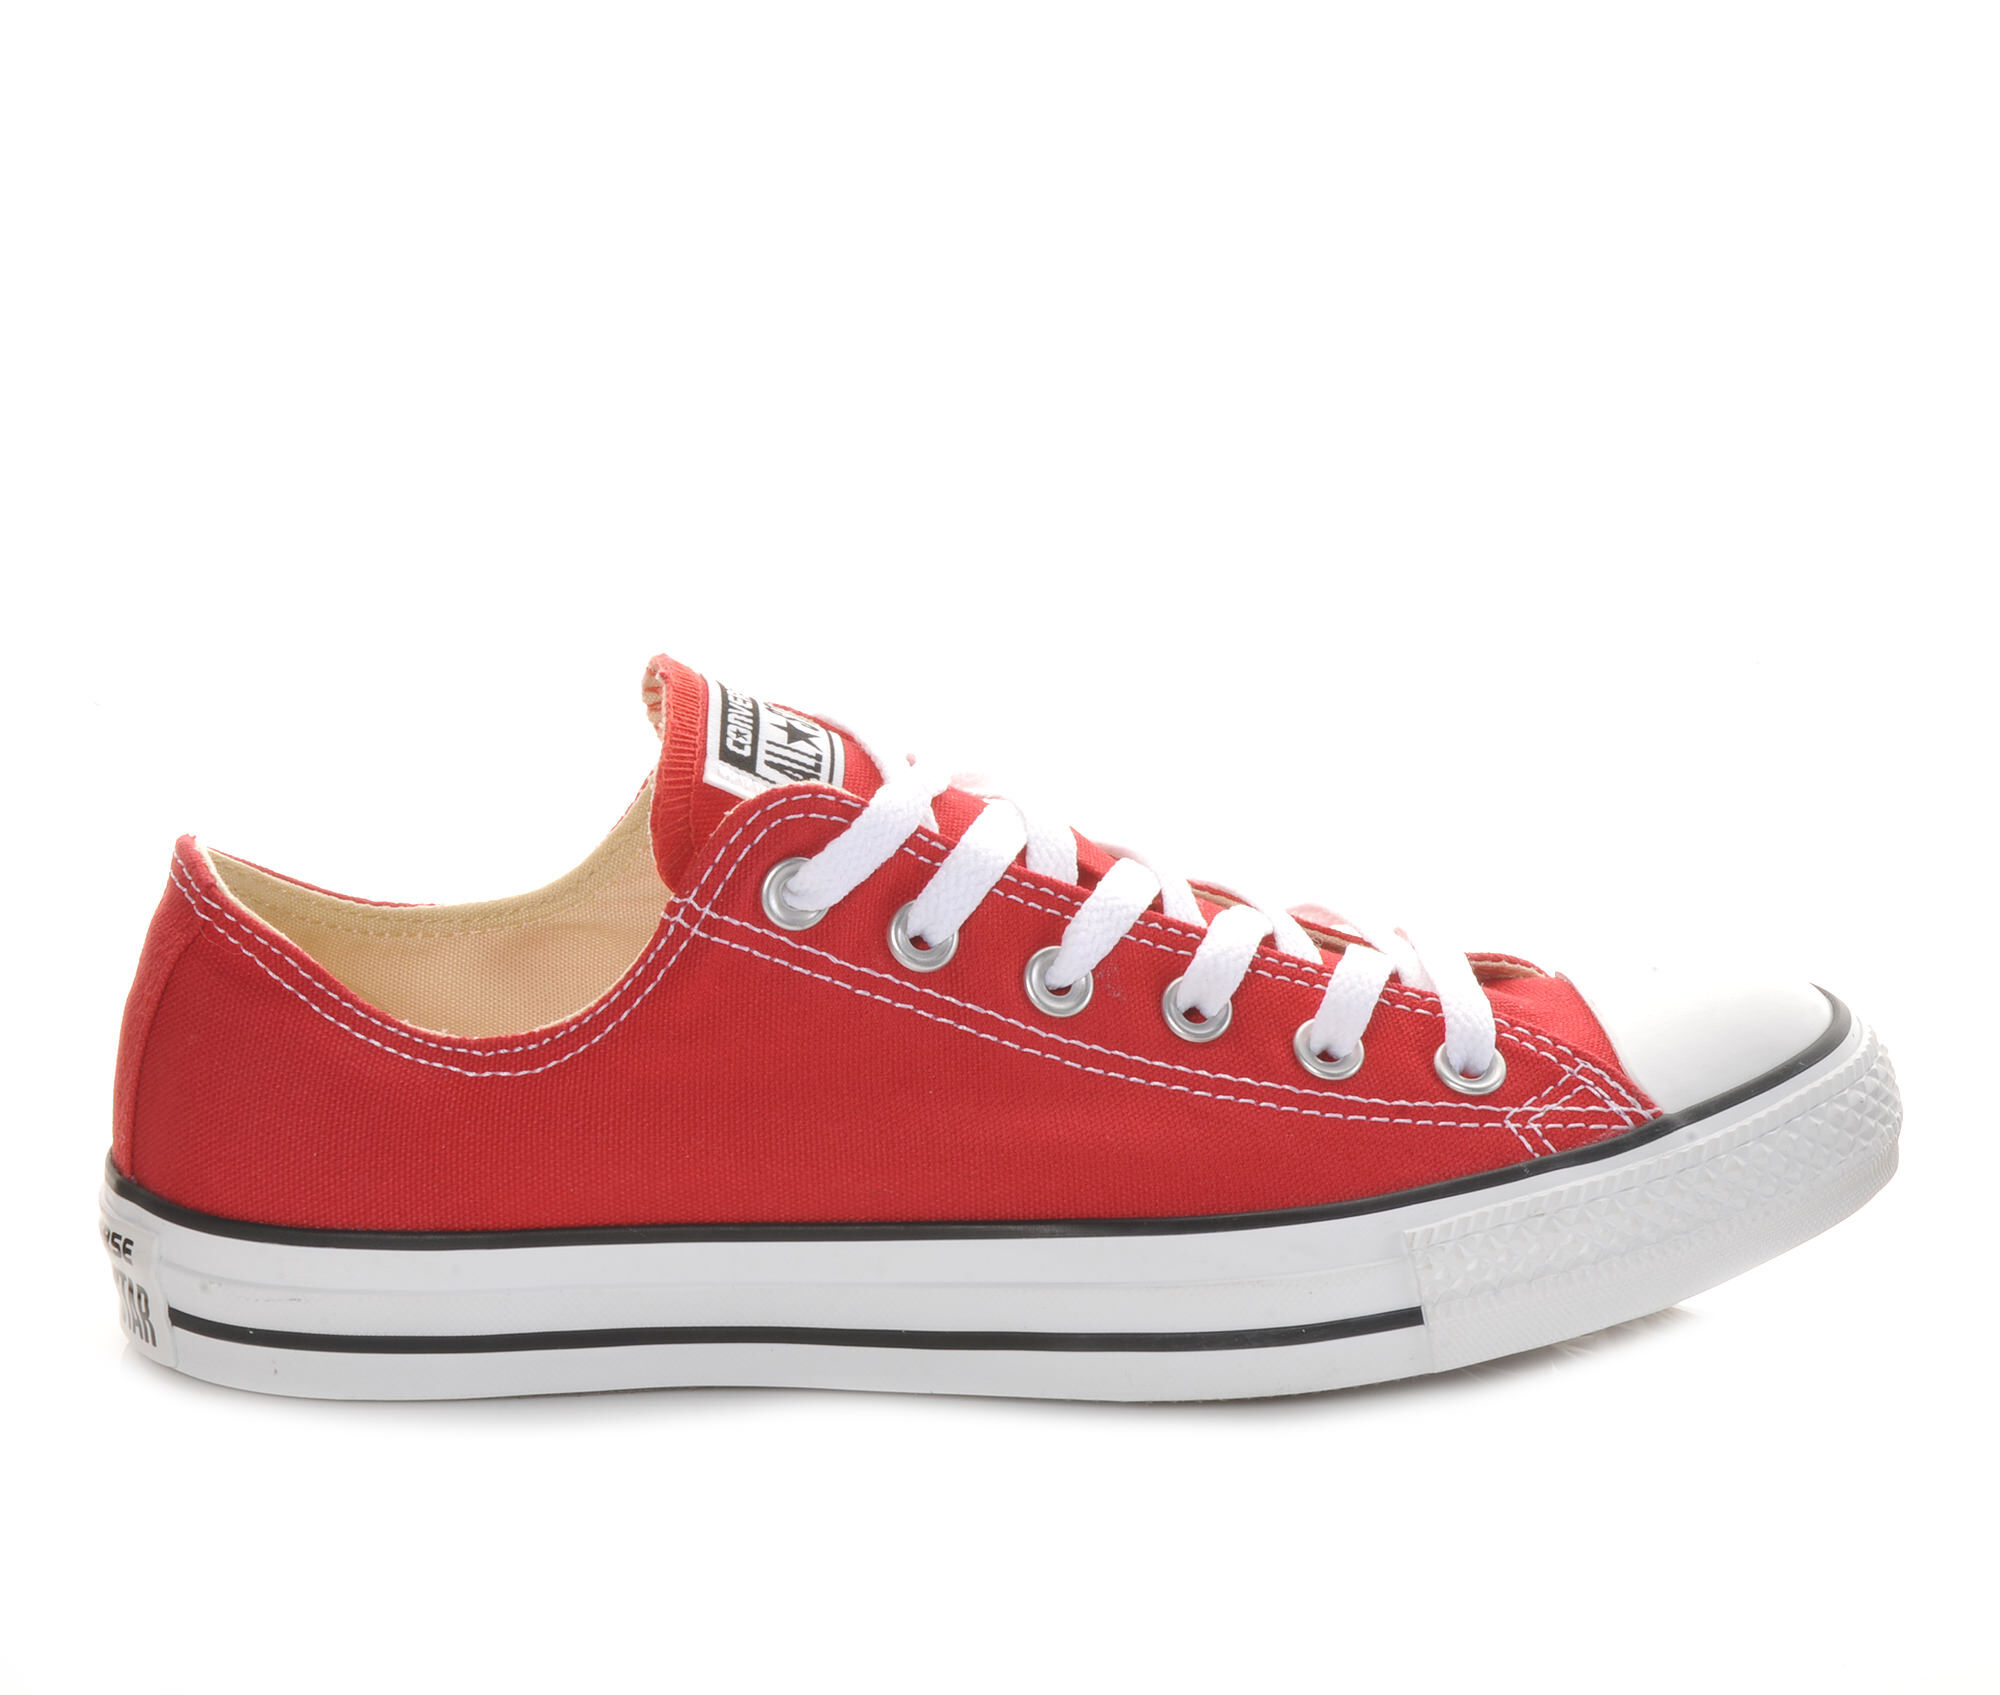 Adults' Converse Chuck Taylor All Star Canvas Ox Core Sneakers Red